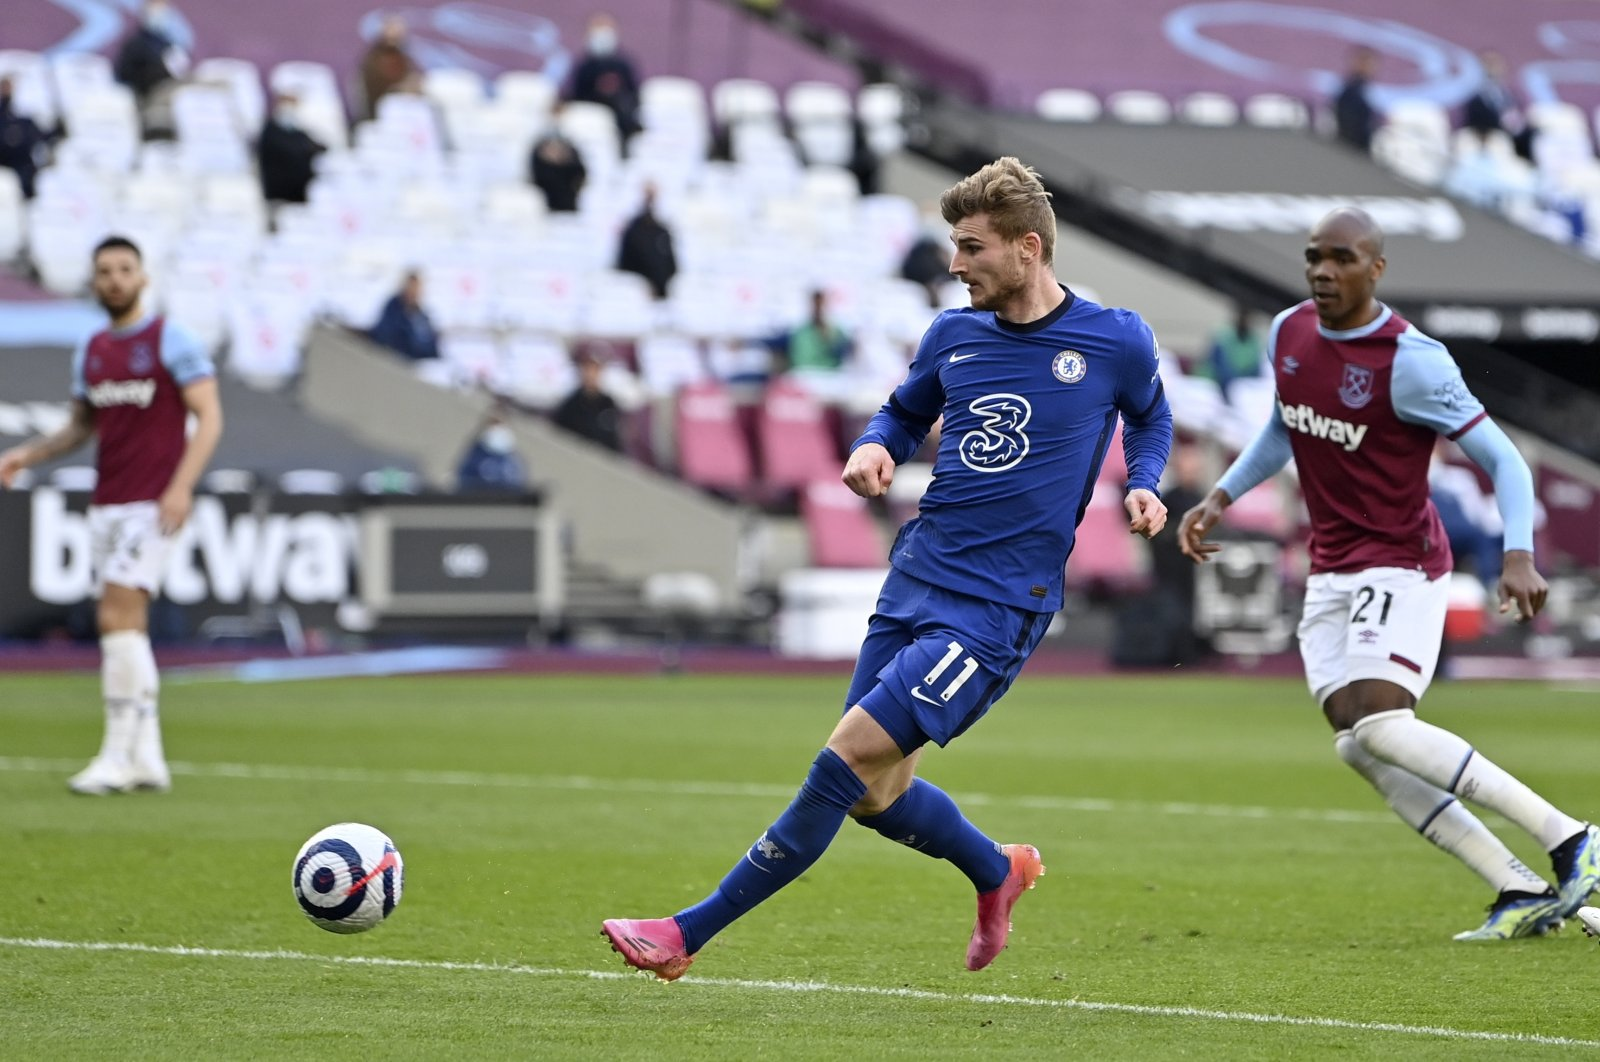 Chelsea's Timo Werner (C) in action during a Premier League match against West Ham United, London, Britain, April 24, 2021. (EPA Photo)